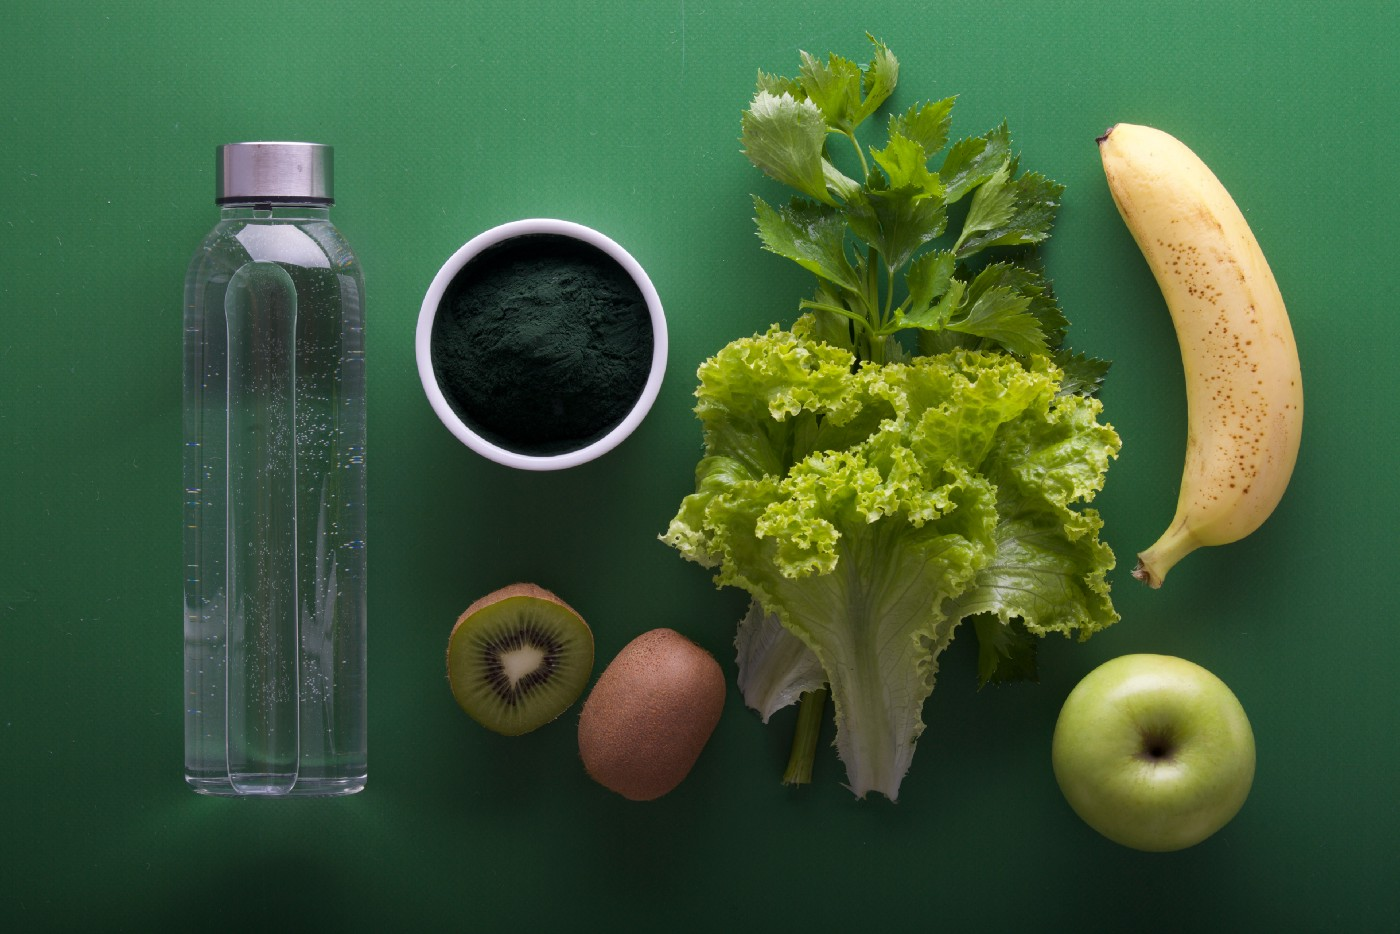 Assortment of green veg, a kiwi, water bottle, apple and banana on a green background